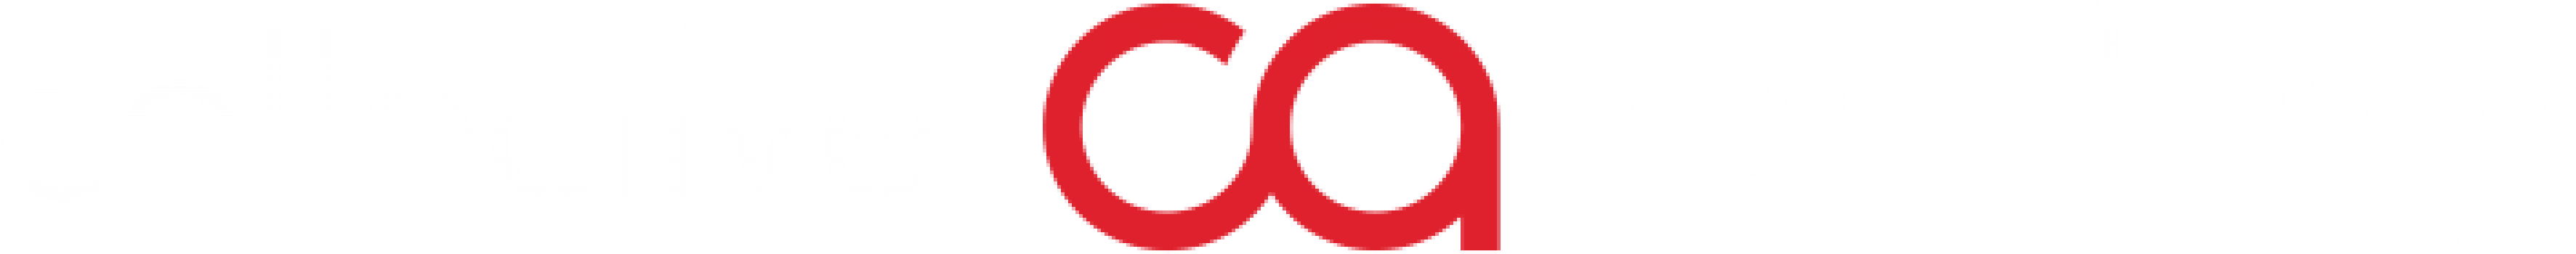 collective-logo-fill-white-red